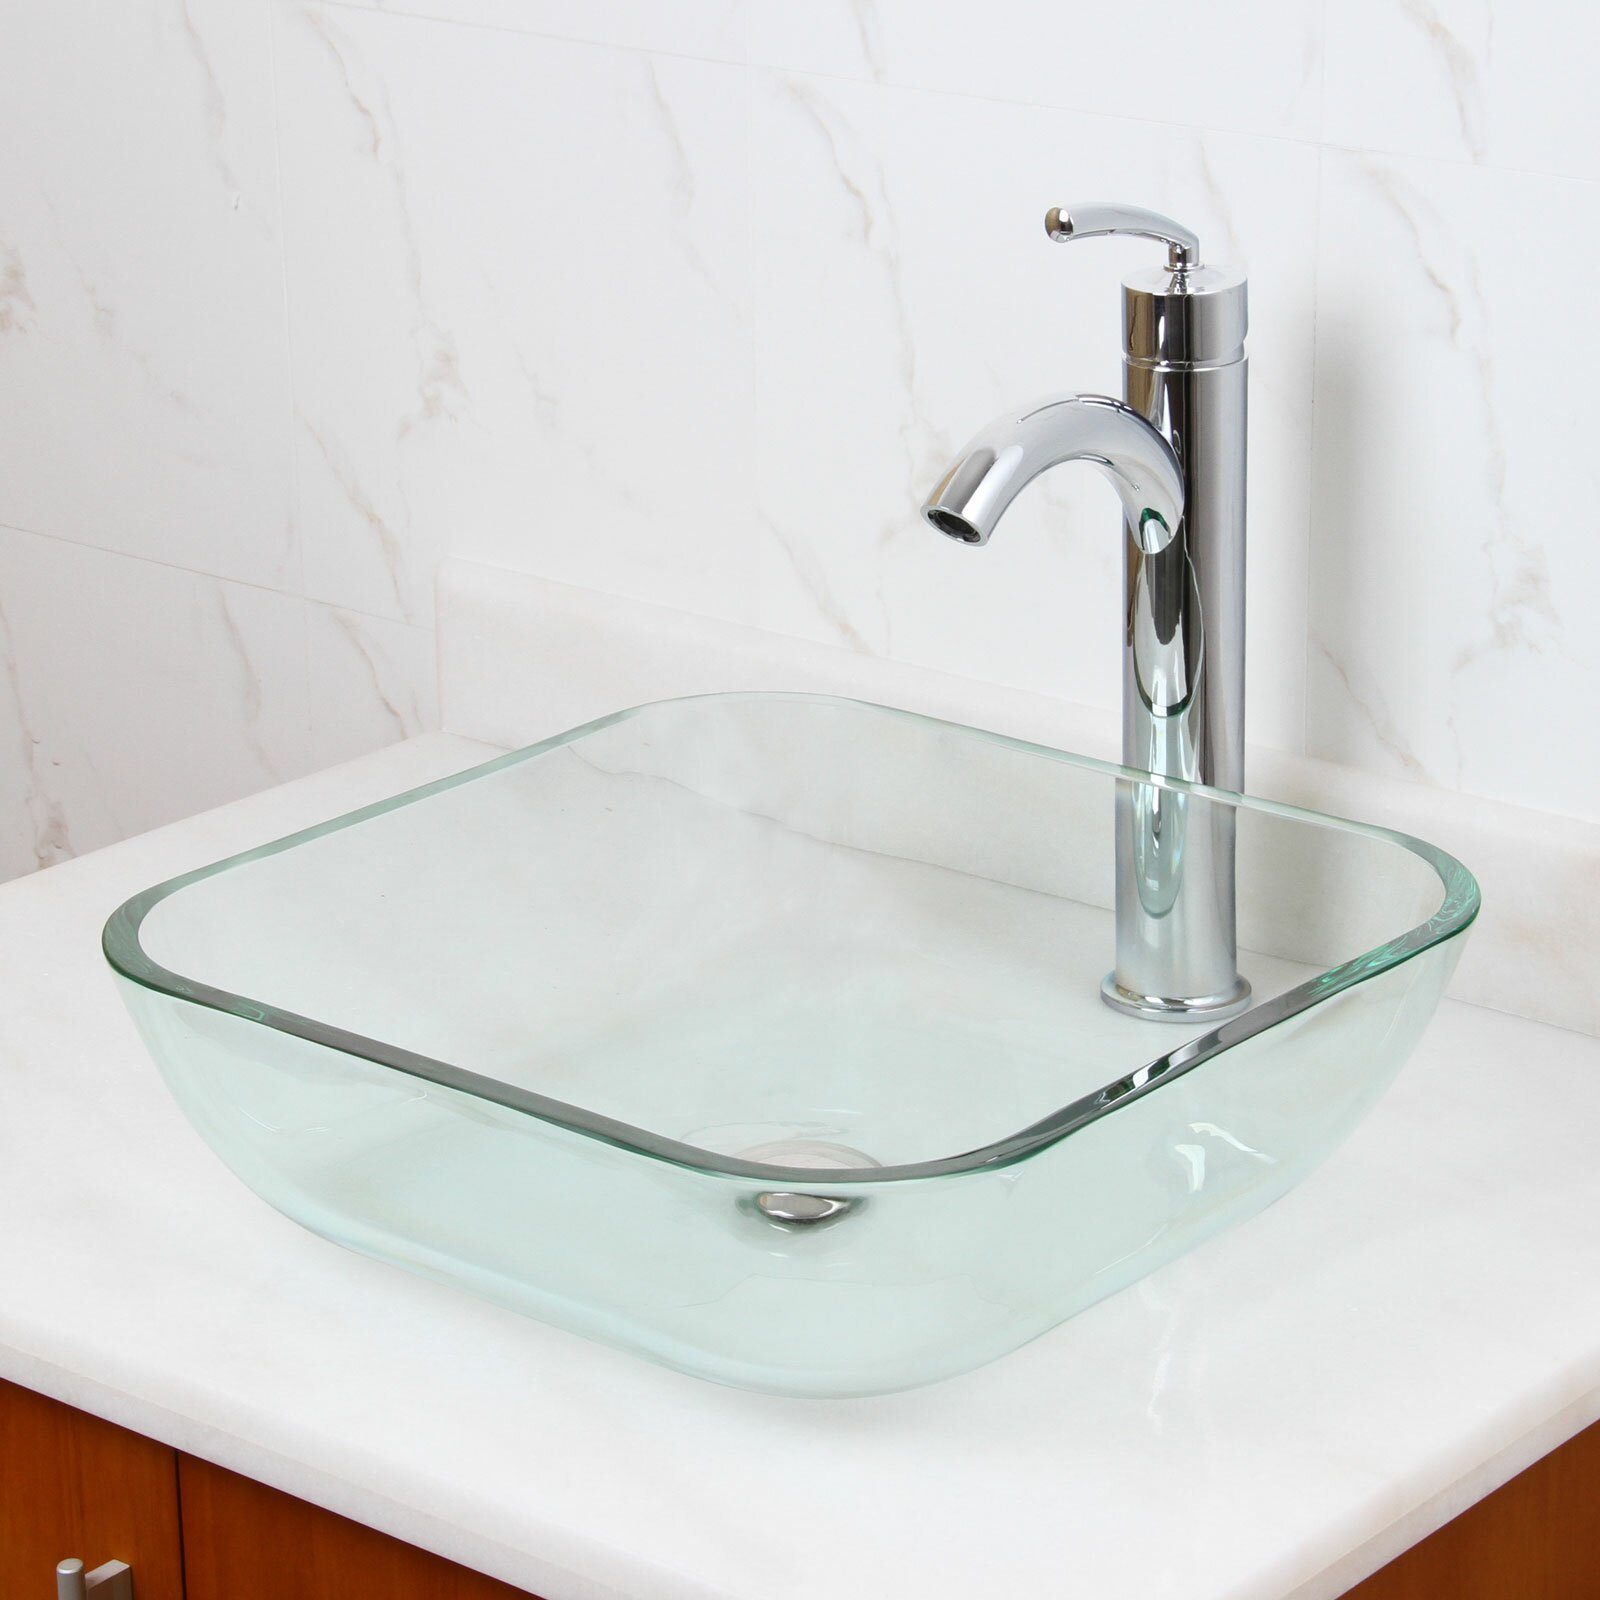 Tempered Glass Vessel Sink : Elite Transparent Tempered Square Glass Vessel Bathroom Sink Wayfair